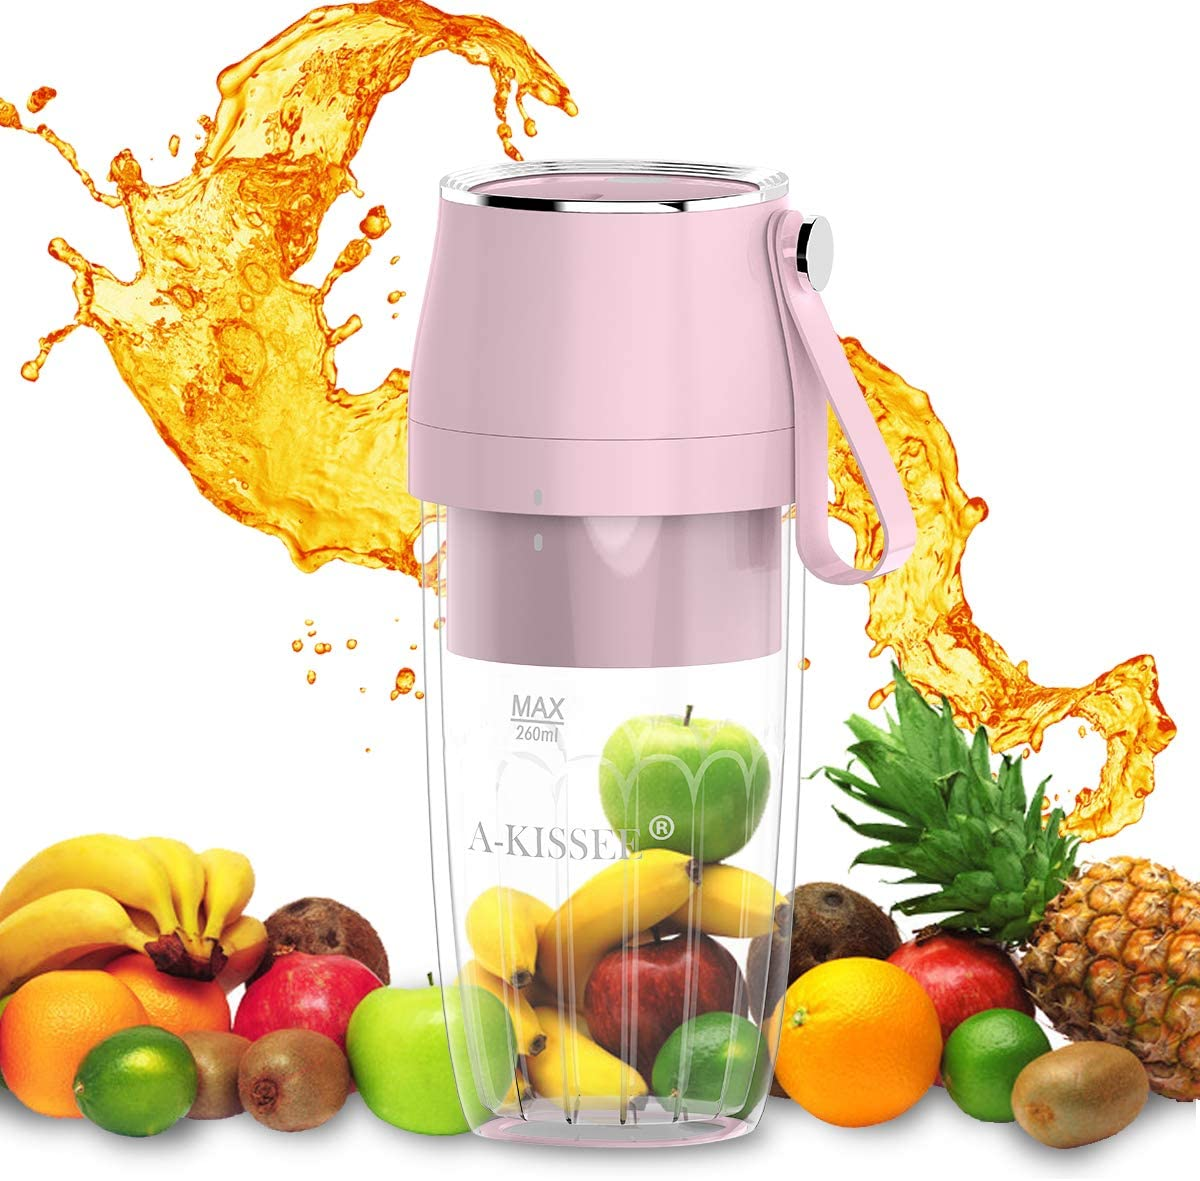 Portable Charging Juicer,Shakes and Smoothies,Cordless Personal Size Blenders With USB Rechargeable,Juicer Magnetic Charging Plug,Juicer Mixer Cup For,Office,Sports,Travel,Outdoors,260ml,BPA Free